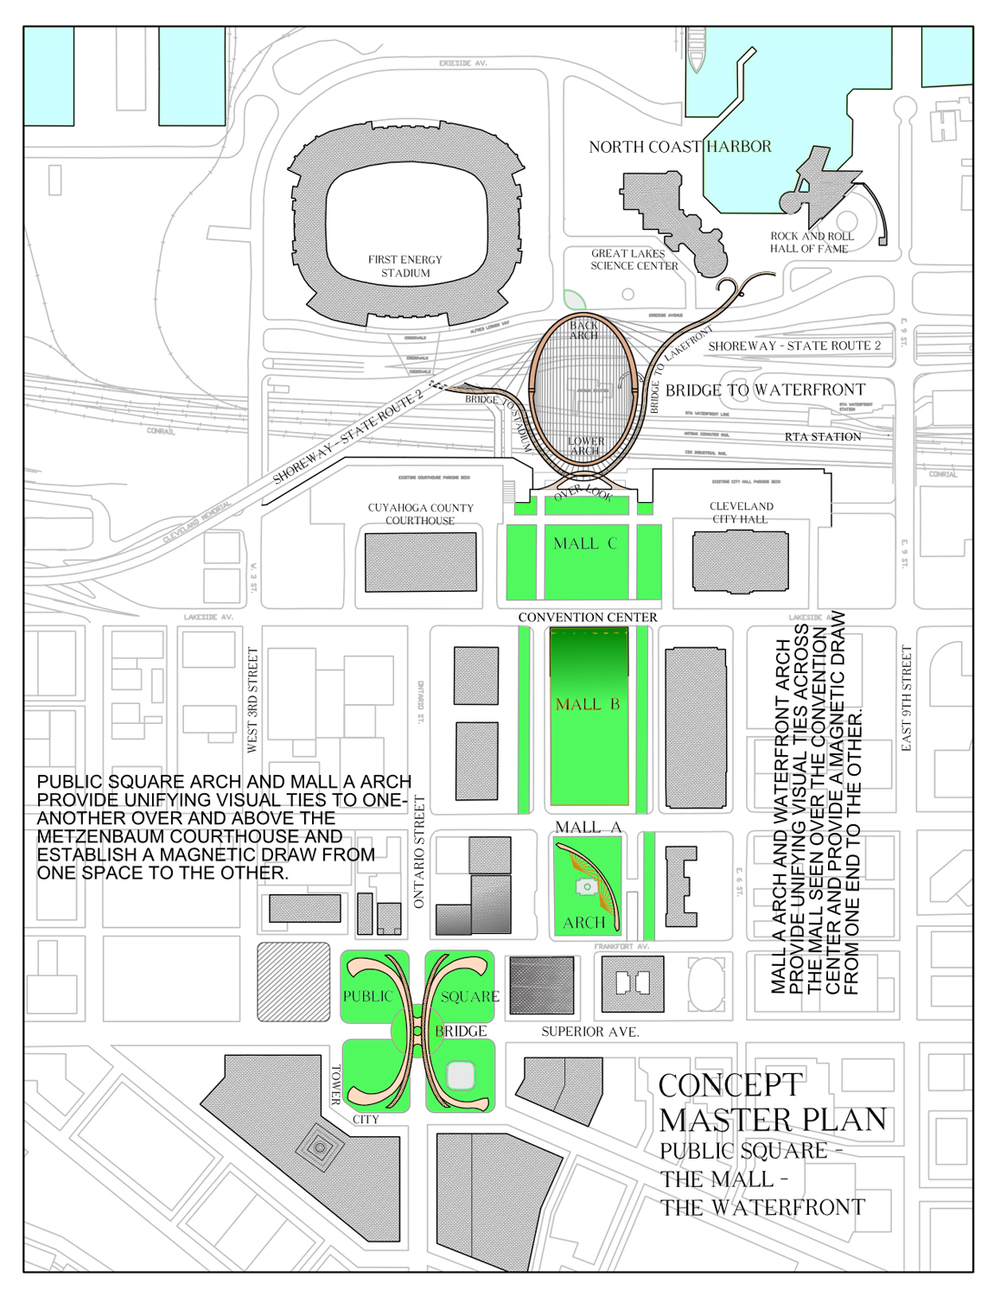 Master Plan for Cleveland Public Square, The Mall, and the Waterfront Bridge